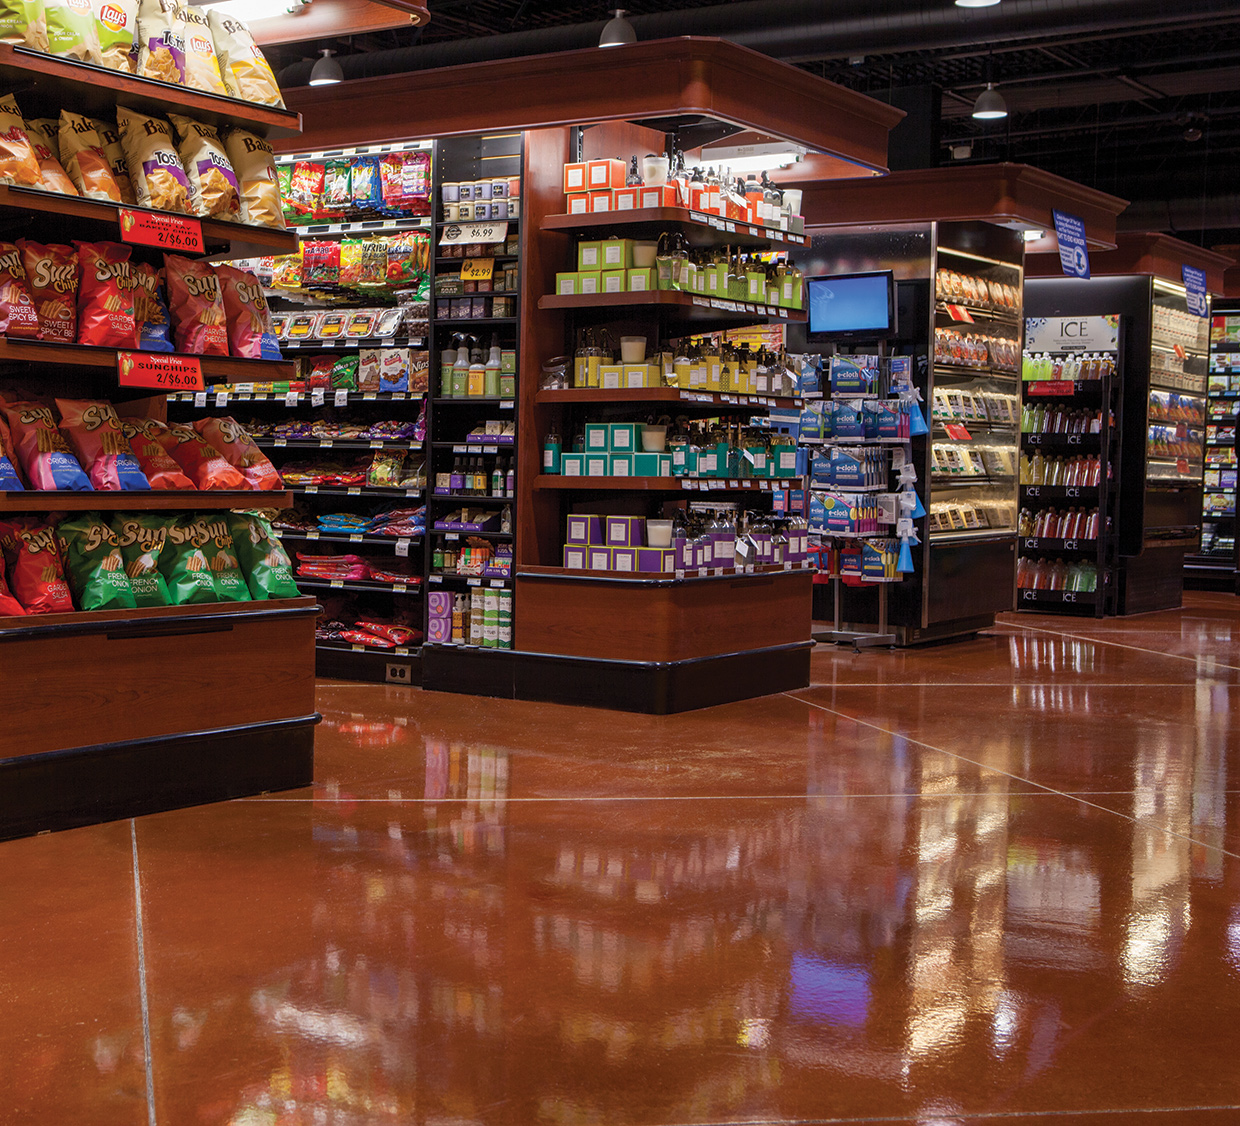 High-End Grocery Store End Cap - Polished Concrete Floor